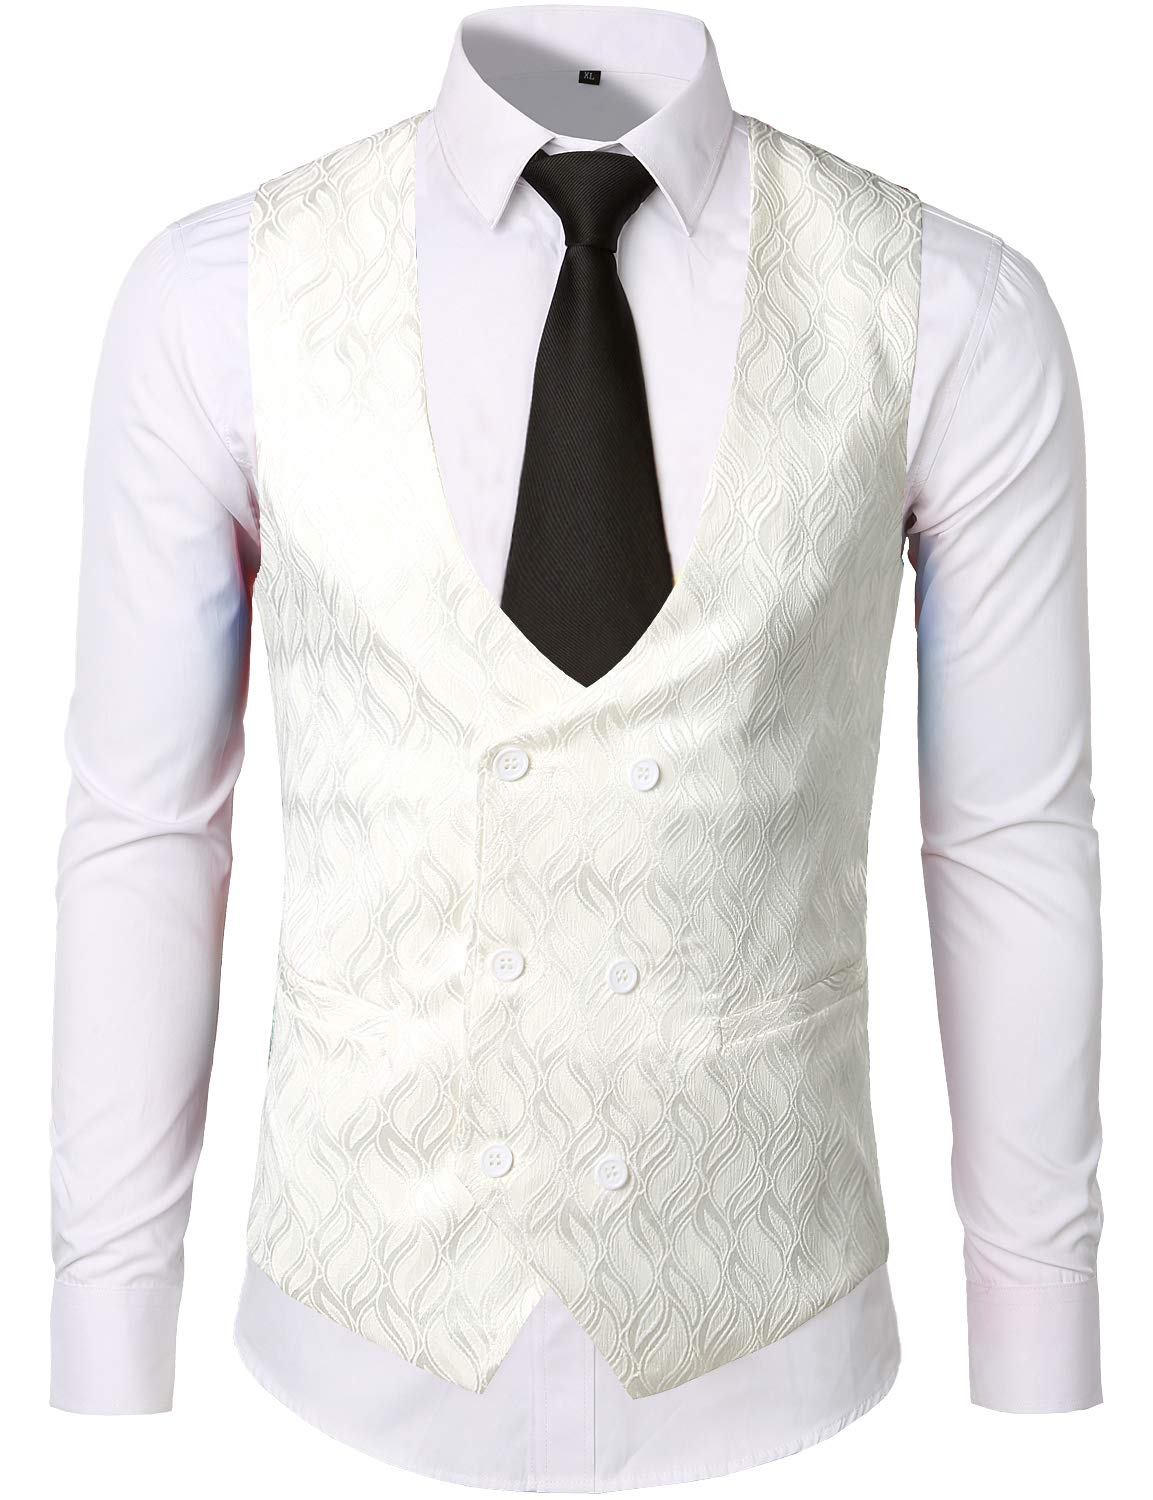 ZEROYAA Mens Hipster V Neck Slim Fit Double Breasted Paisley Dress Vest for Suit or Tuxedo 3